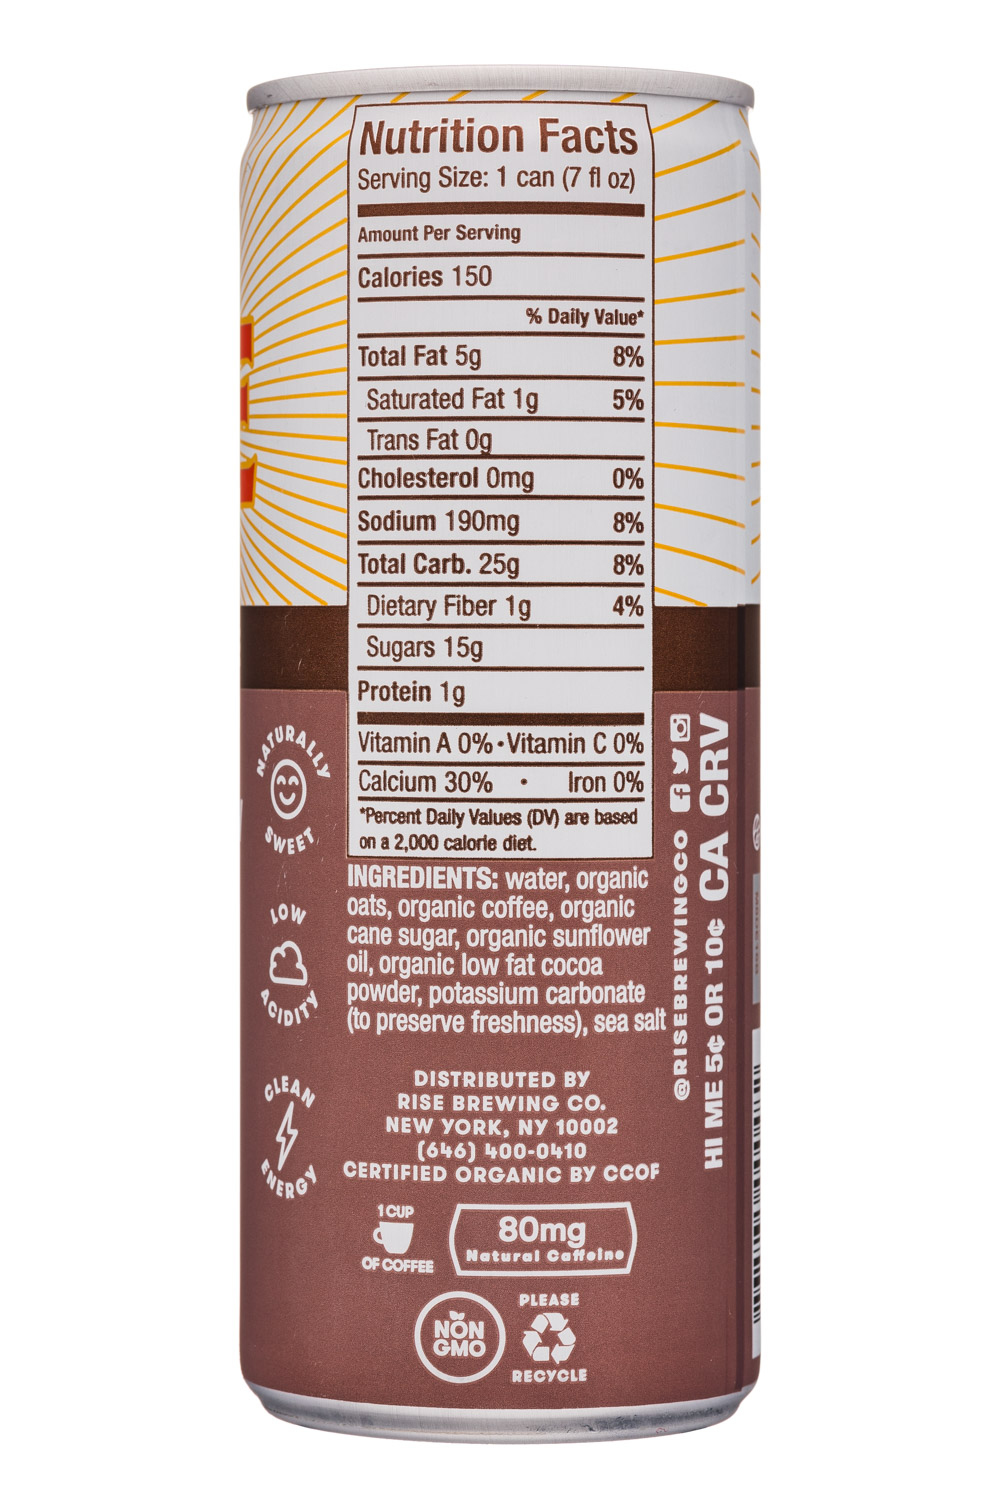 Rise Brewing Co.: Rise-7oz-NitroLatte-Mocha-Facts